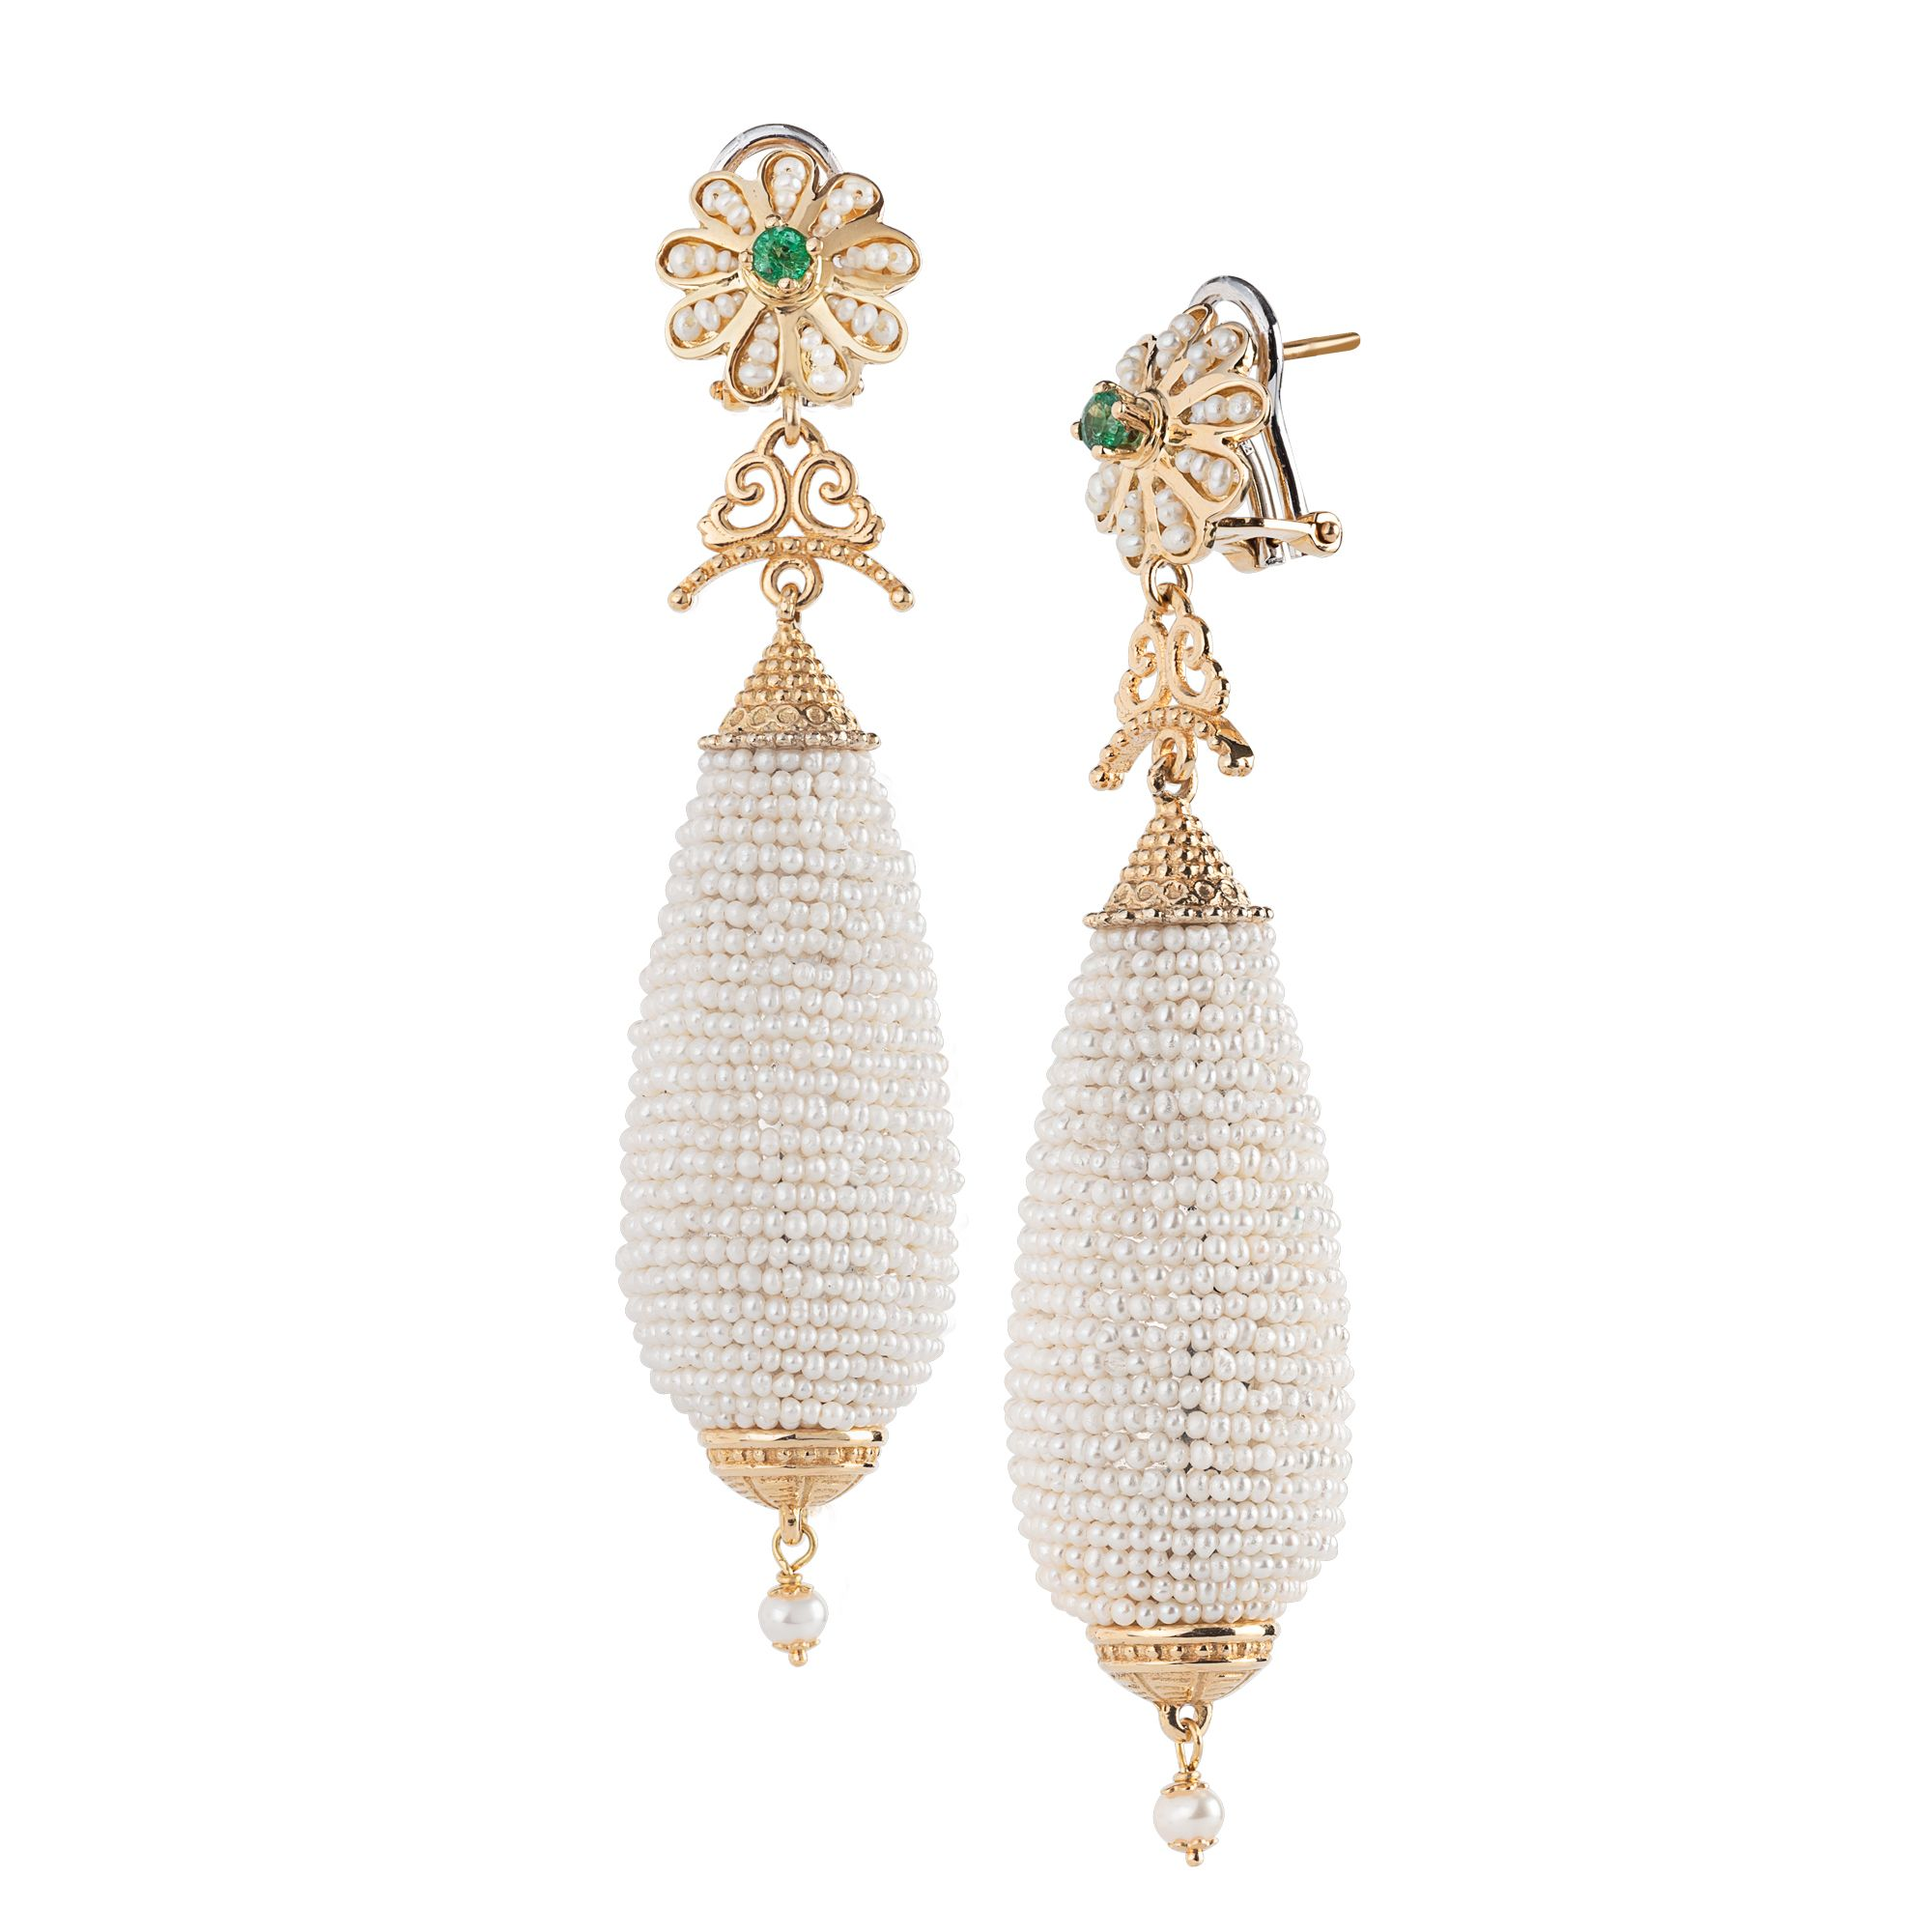 Gold pendant Earrings with Pearls and precious Stones (14206)